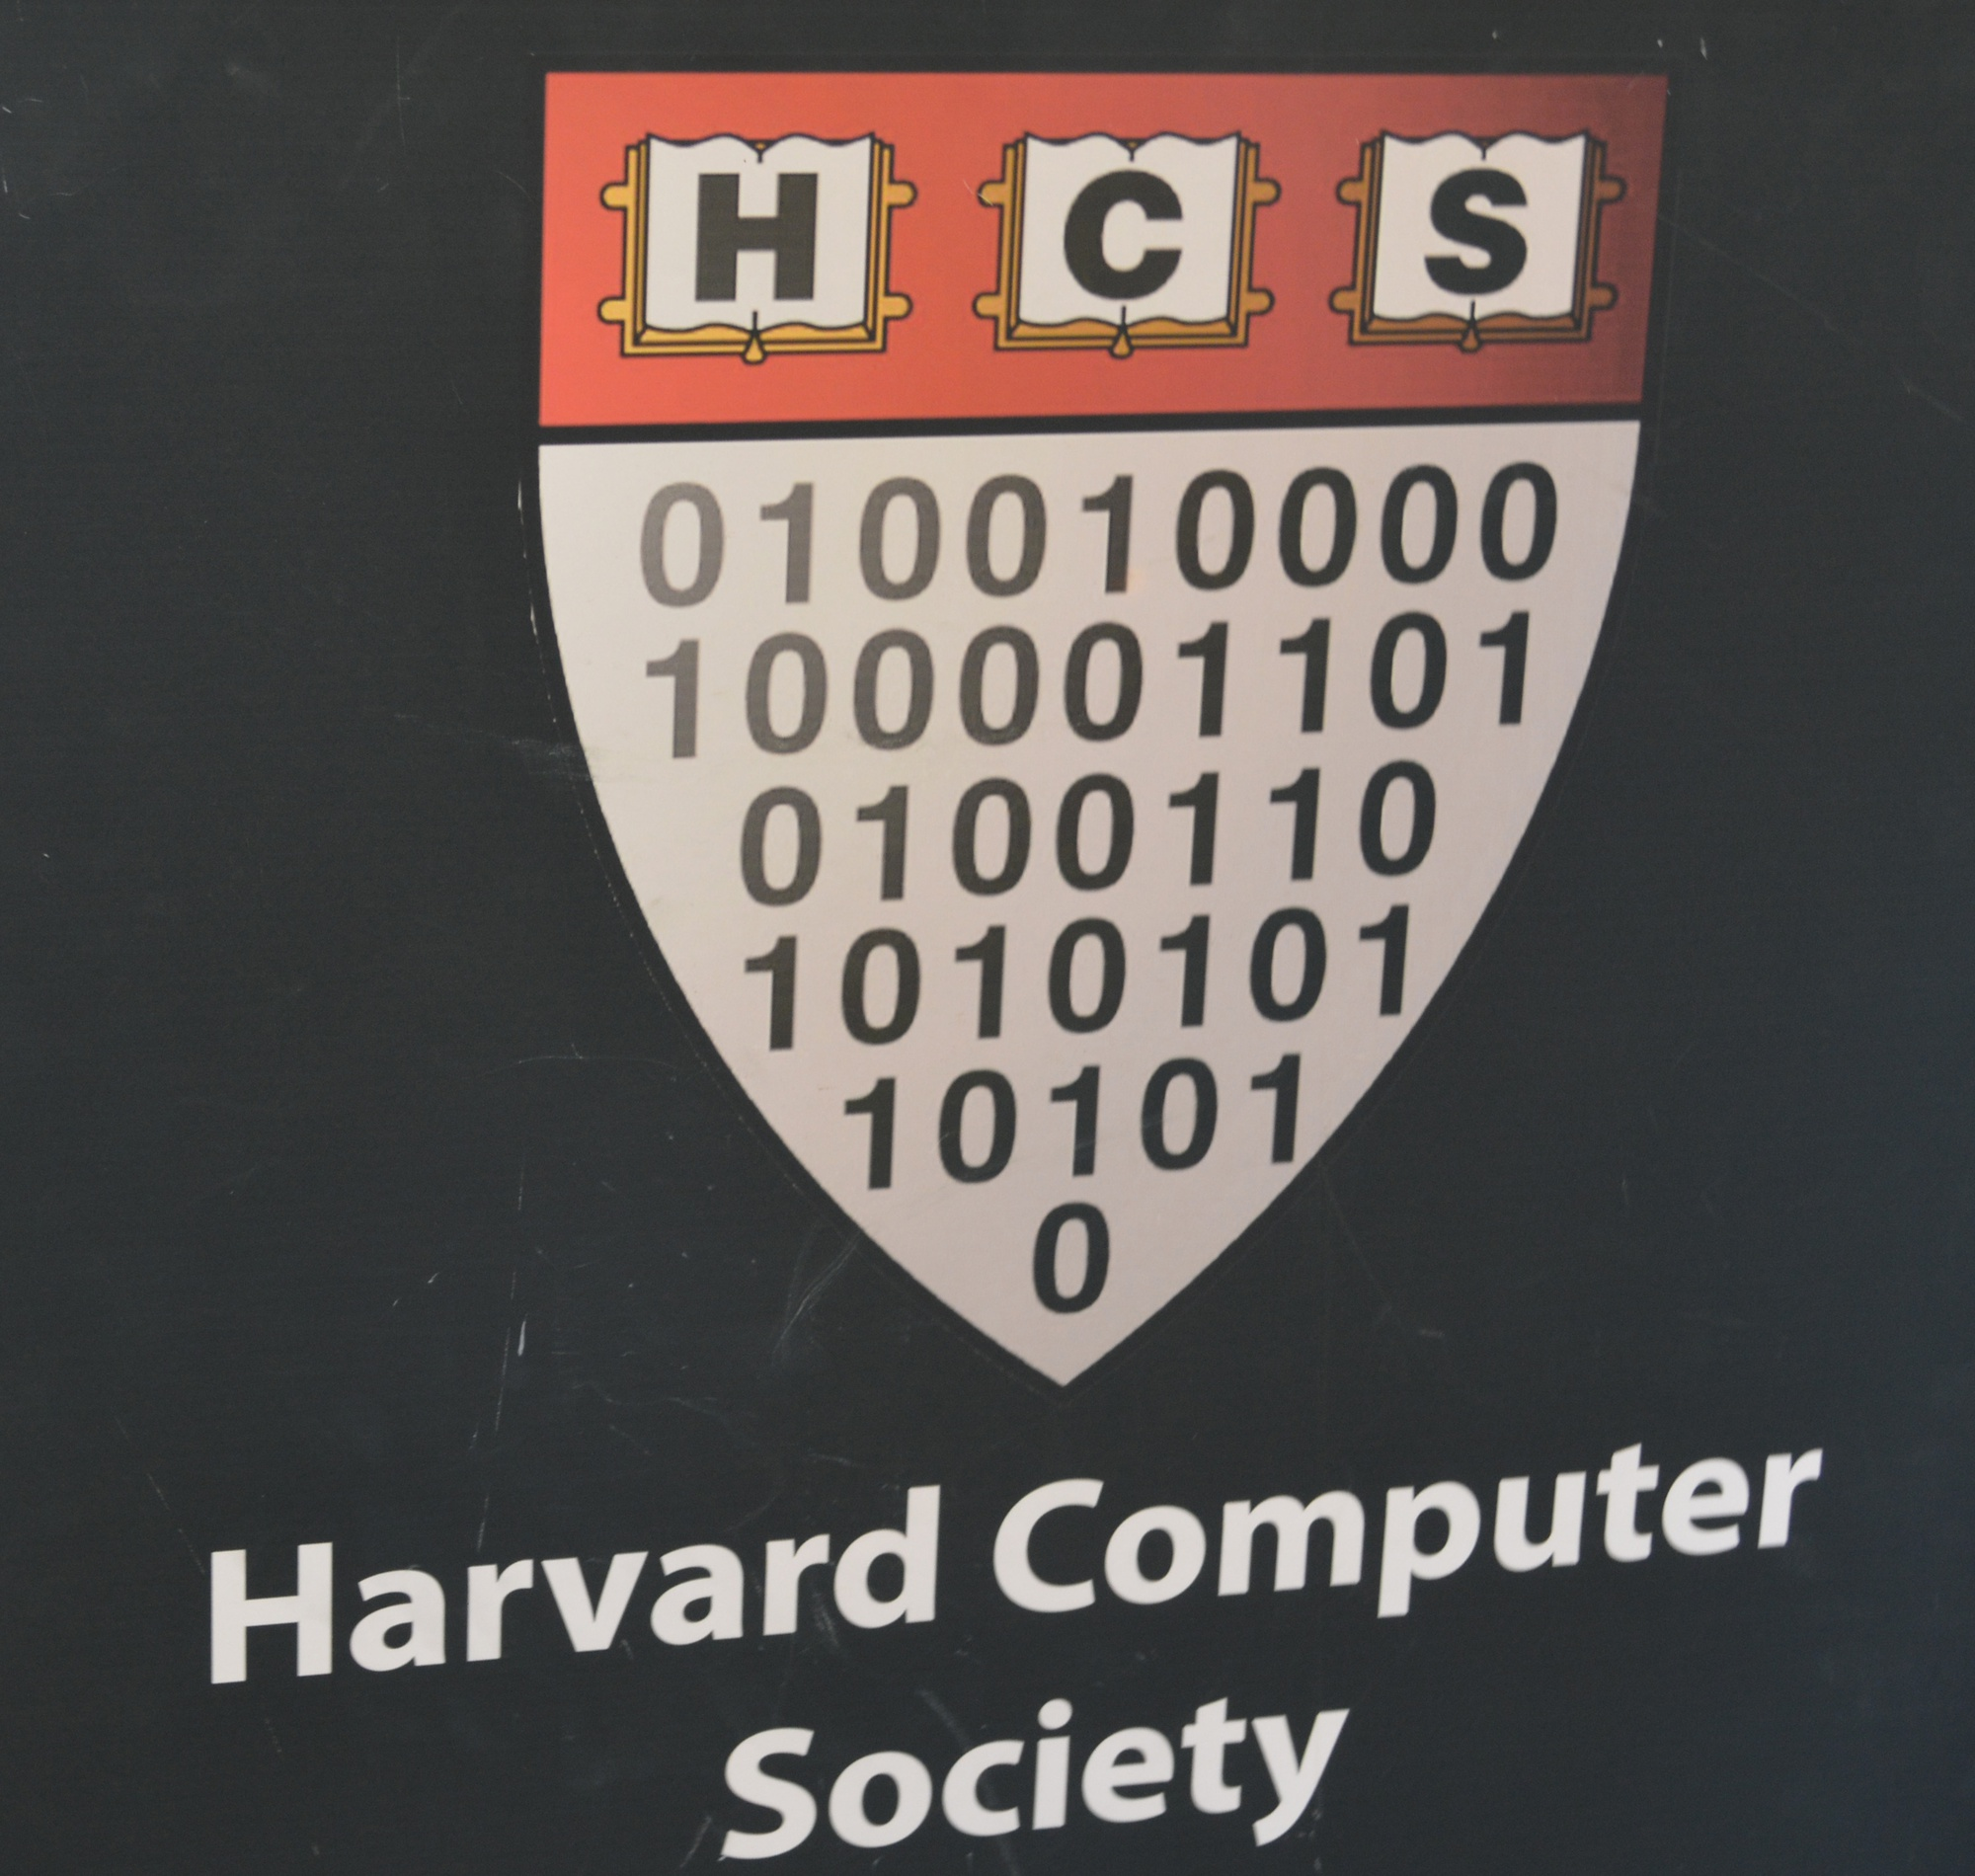 The Harvard Computer Society maintains servers in a facility located above Bank of America on 1414 Mass Ave. These servers used to be located at the group's headquarters, located at the SOCH.